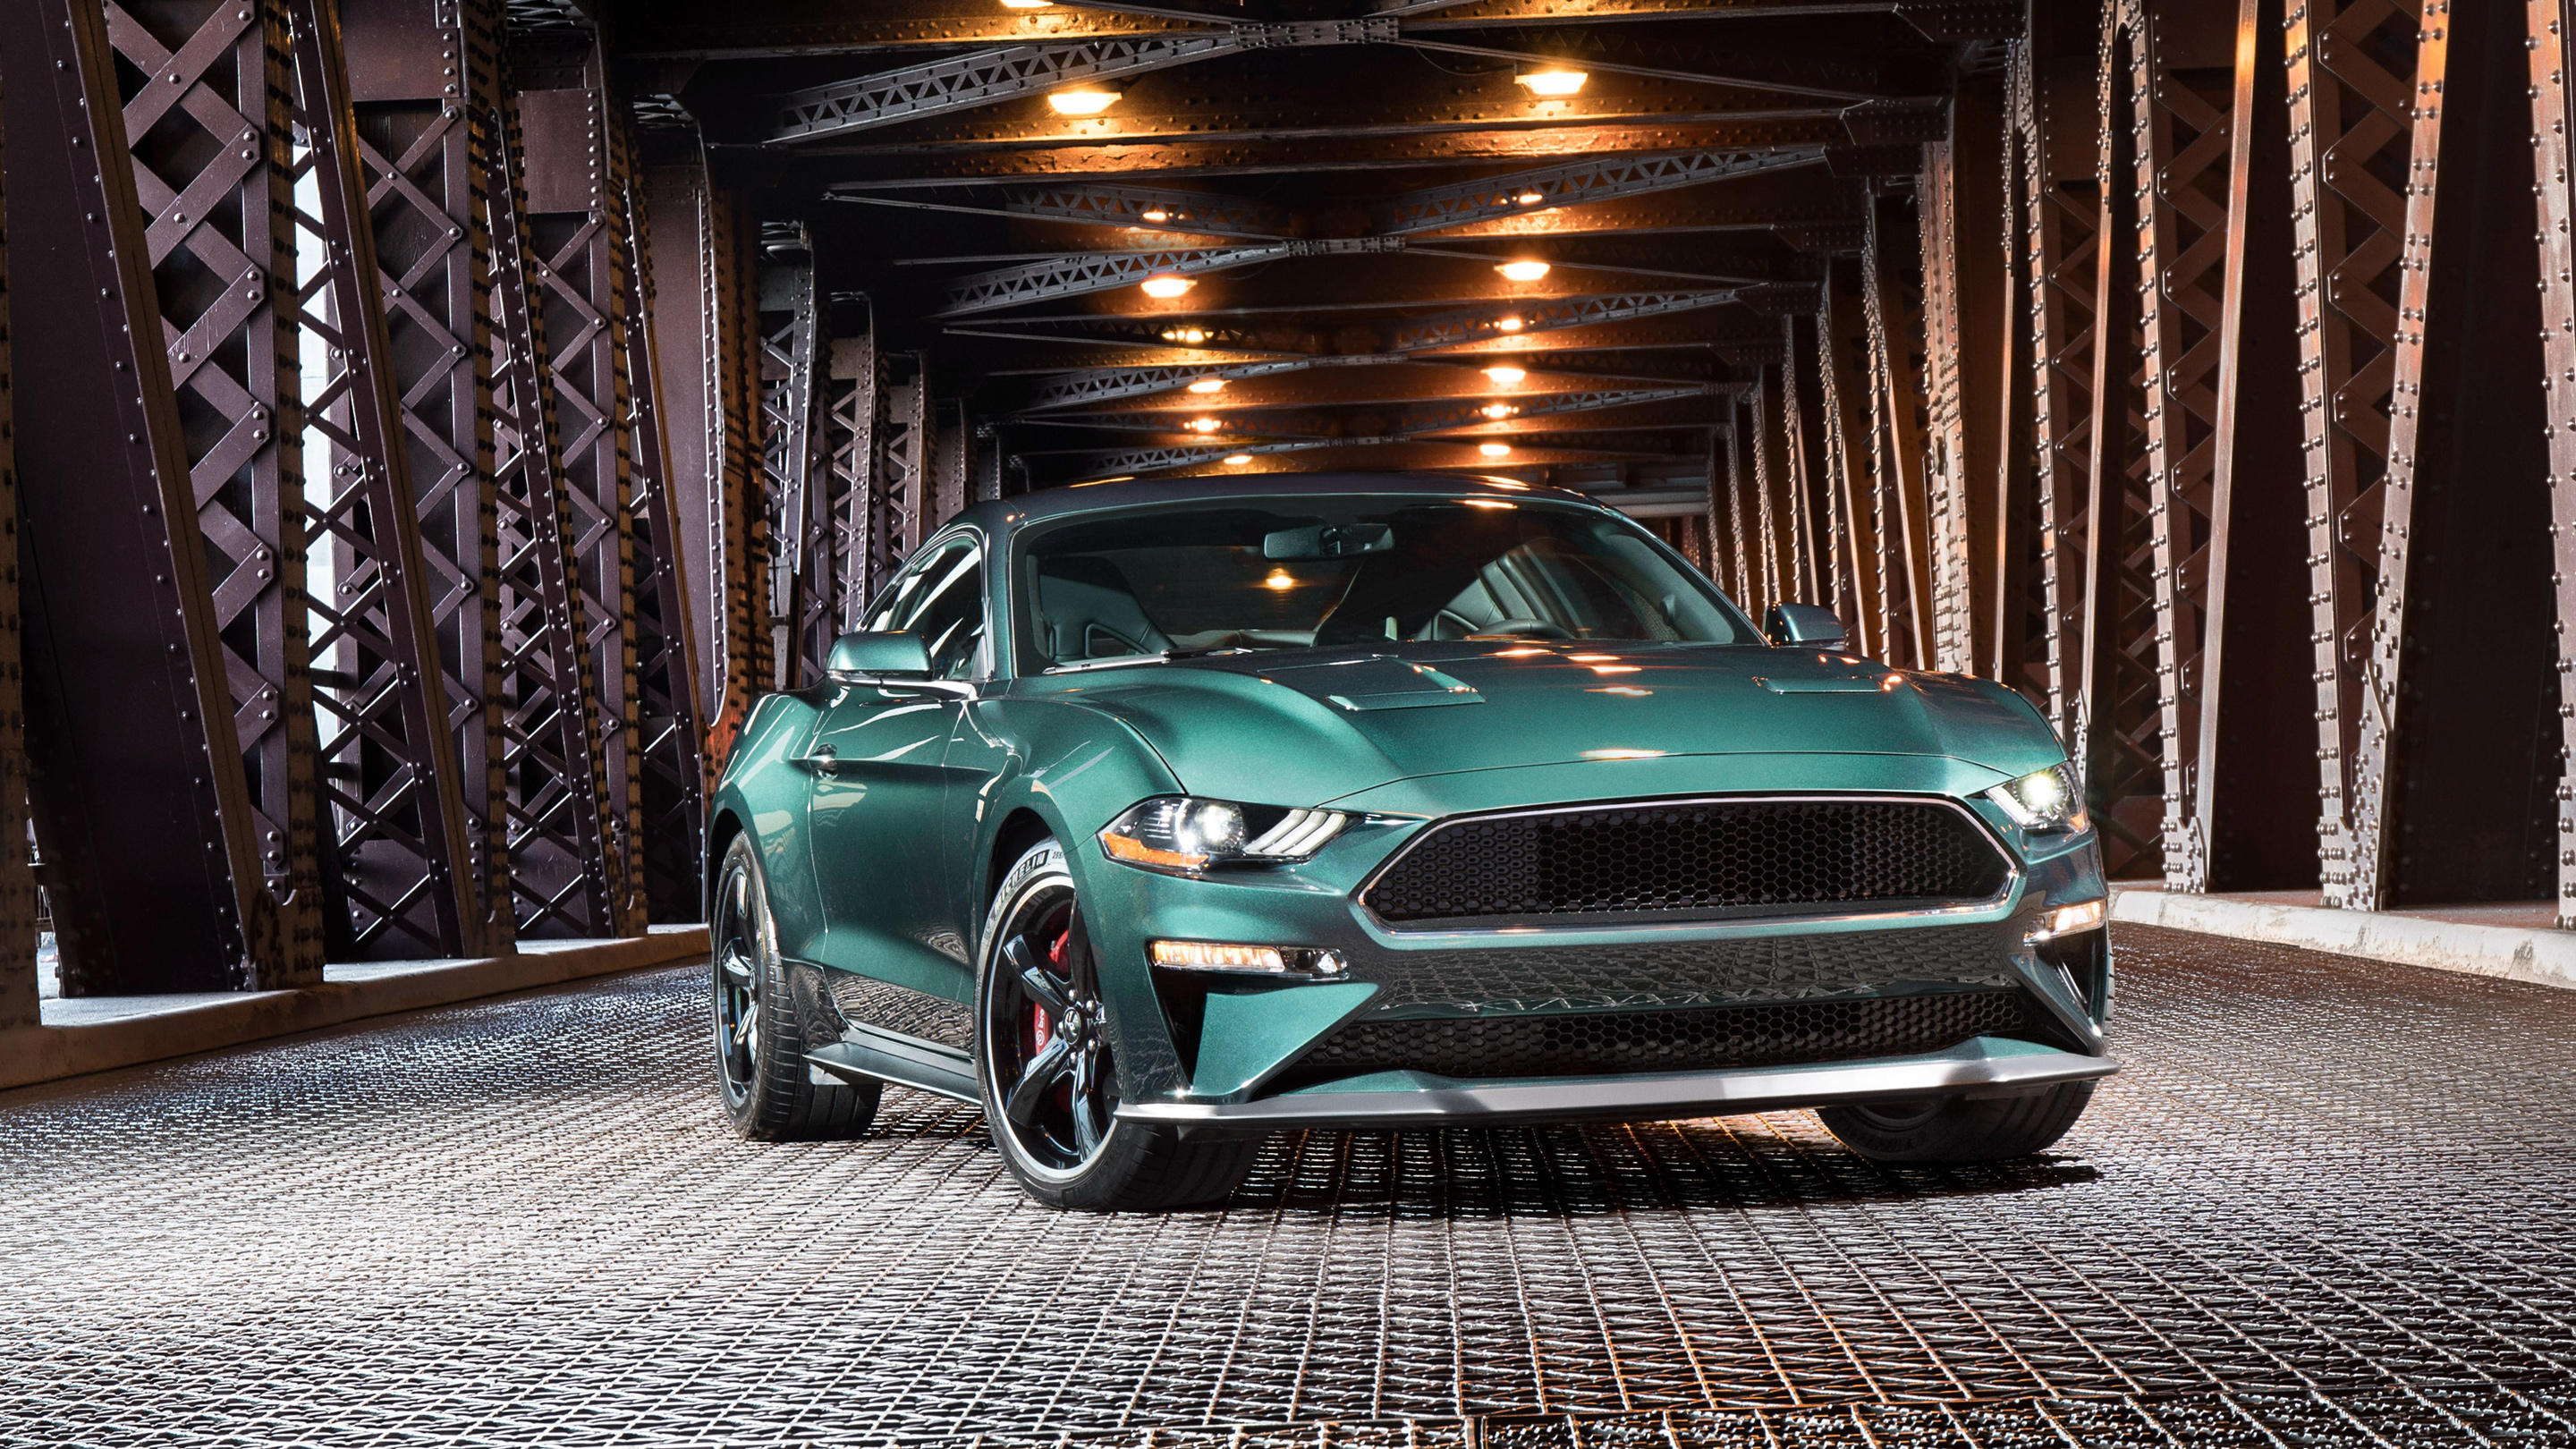 2019 ford mustang bullitt wallpaper hd car wallpapers id 9428. Black Bedroom Furniture Sets. Home Design Ideas